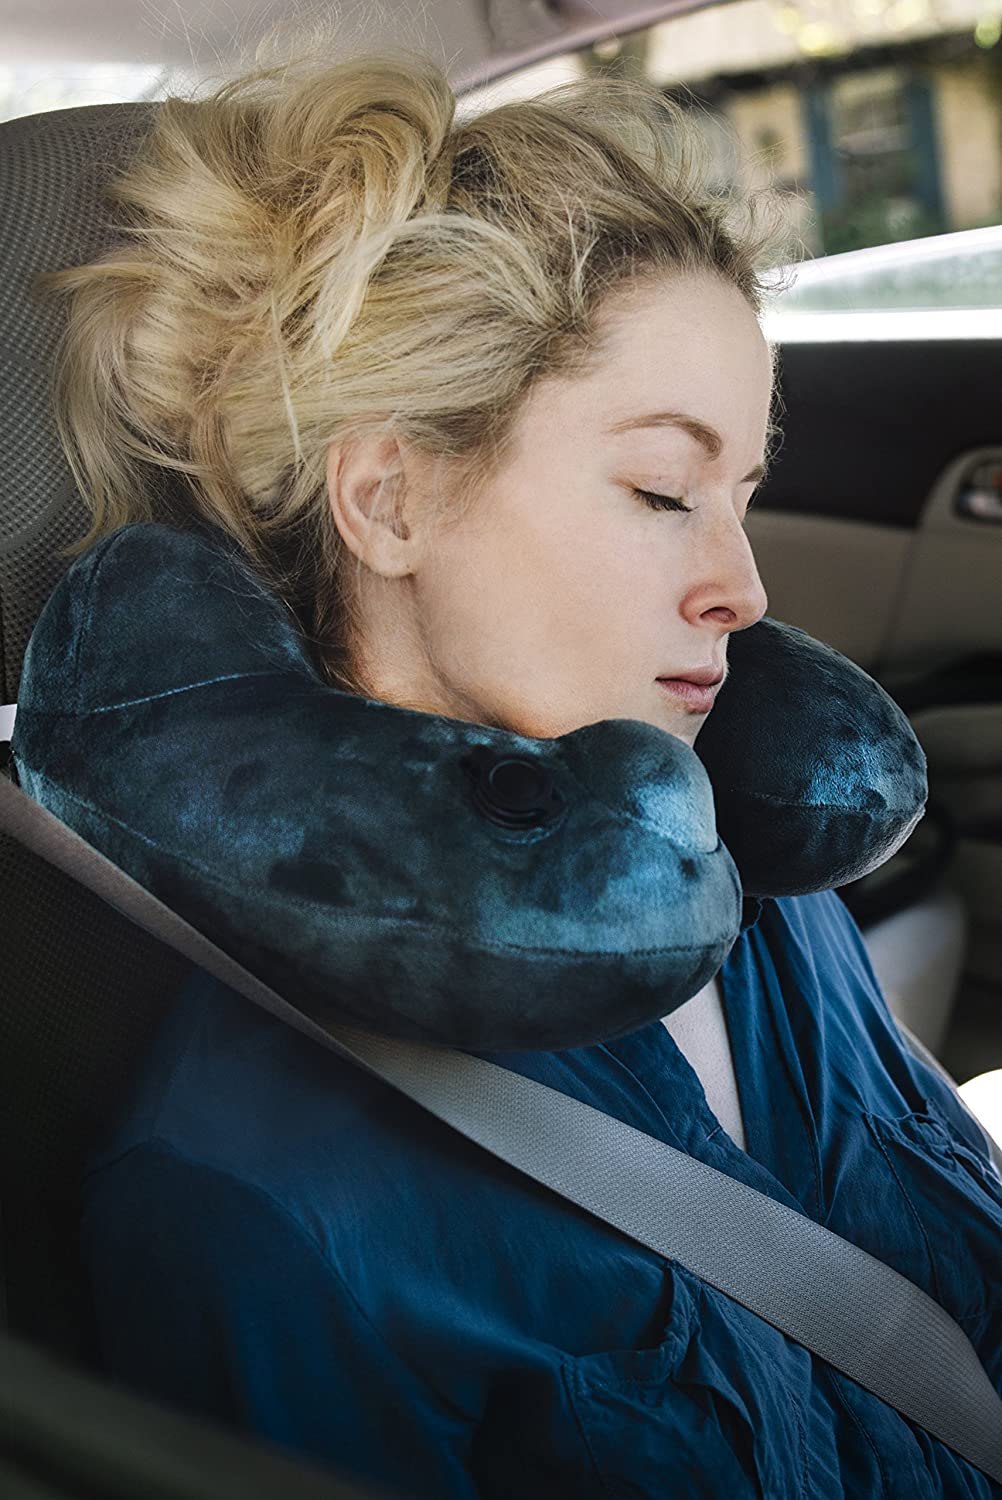 Daydreamer Neck Pillow Luxuriously